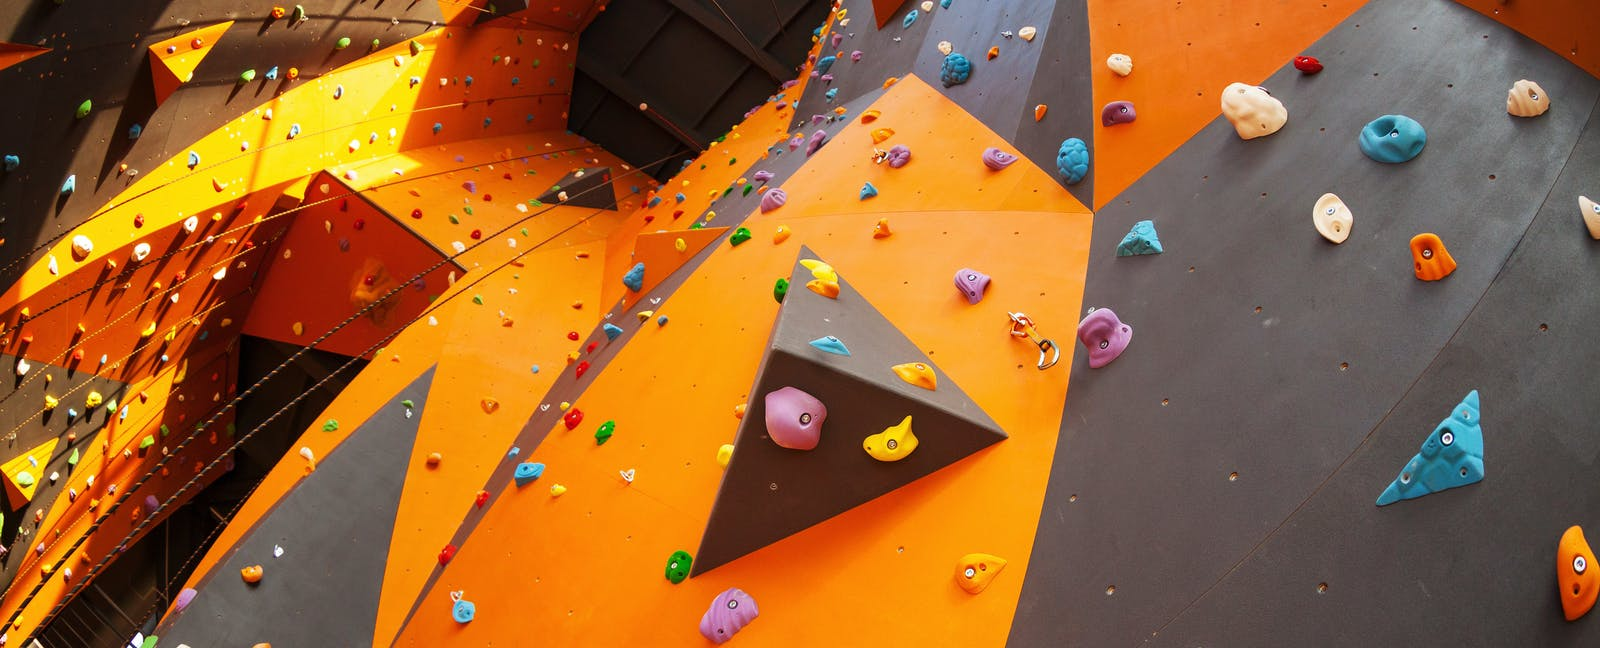 Colleges Should Build Online Programs, Not New Gyms and Climbing Walls